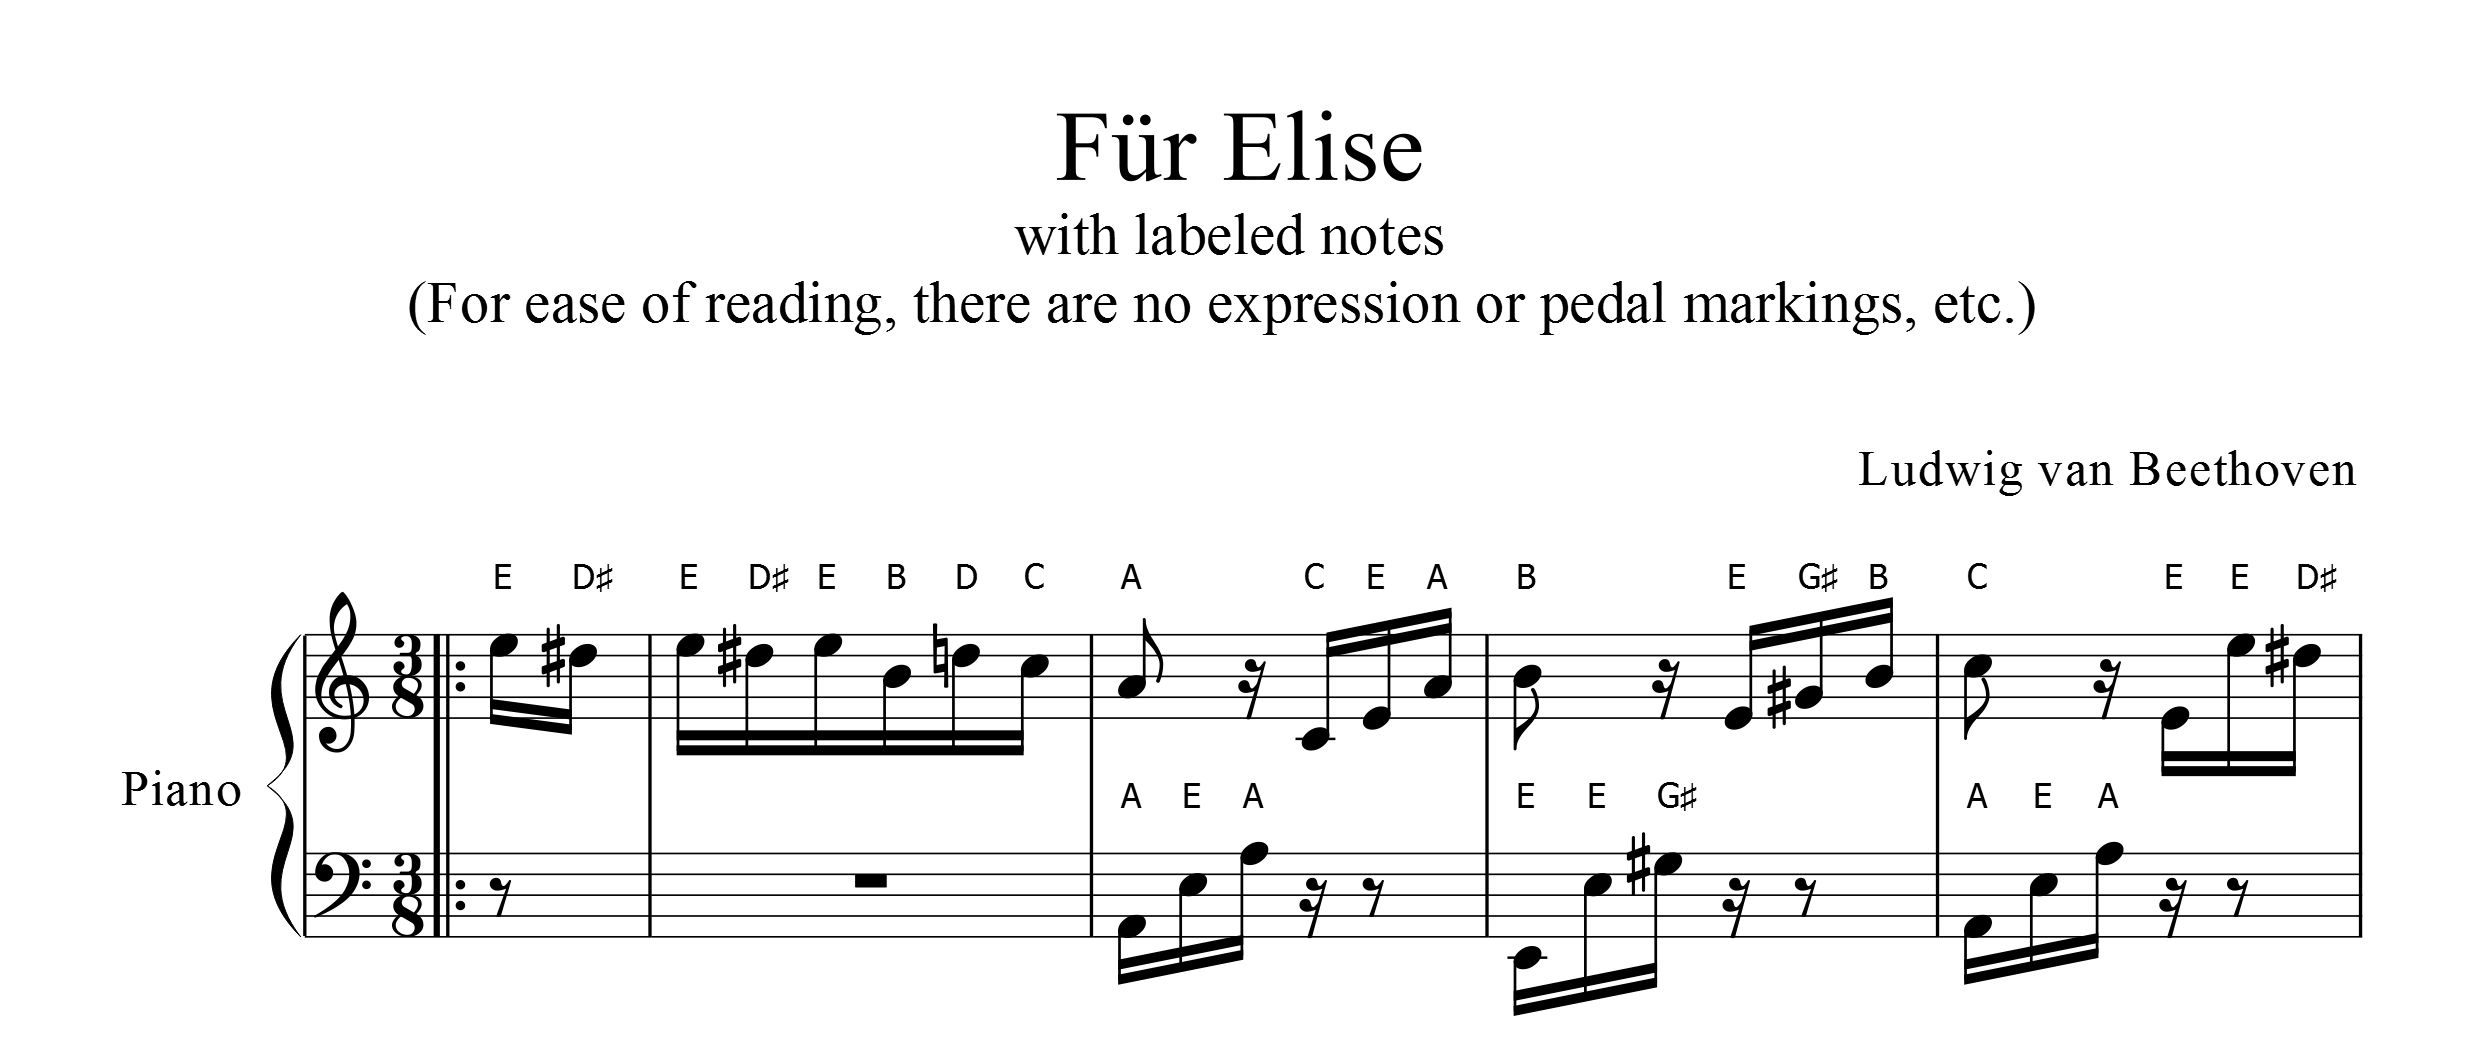 Labeled Fur Elise Yahoo Image Search Results Math Reading